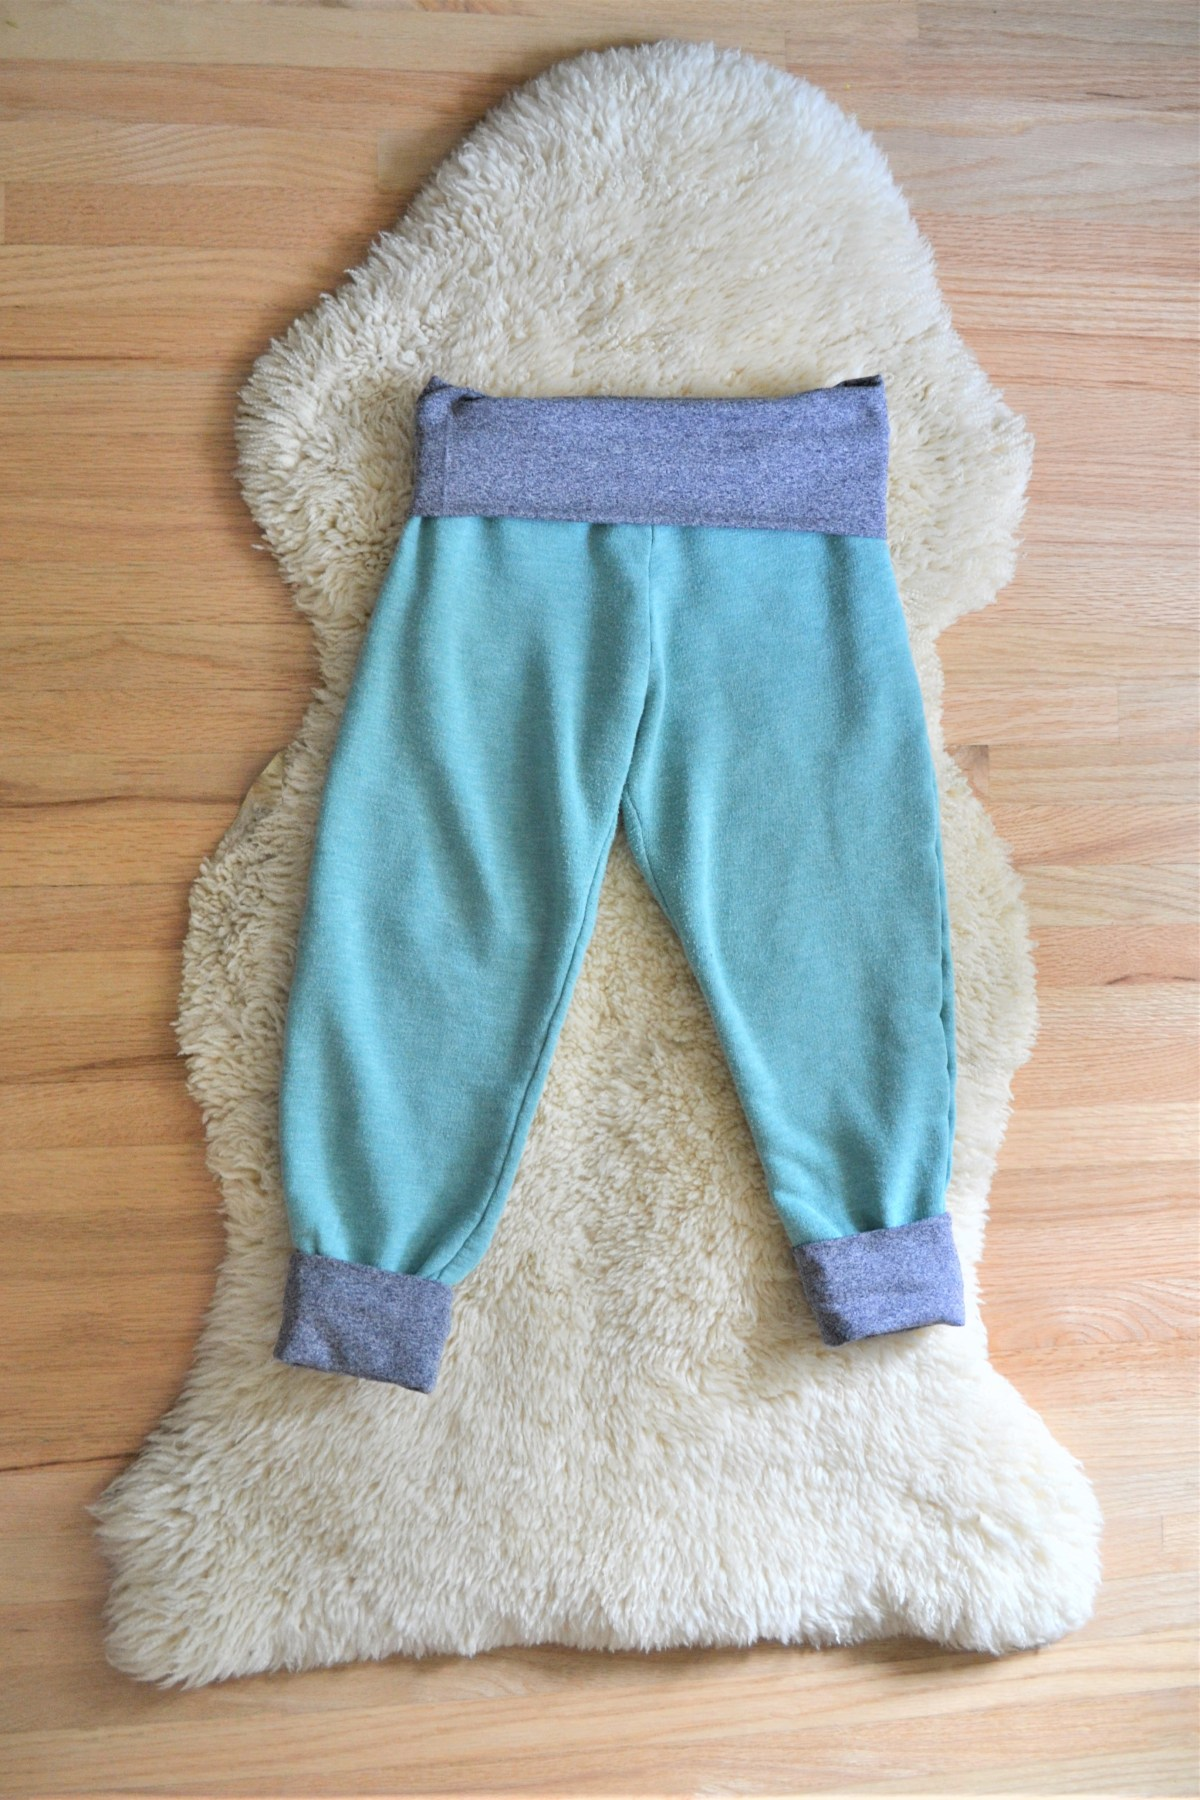 Toddler Boy Grow-With-Me-Pants Tutorial - smallest size